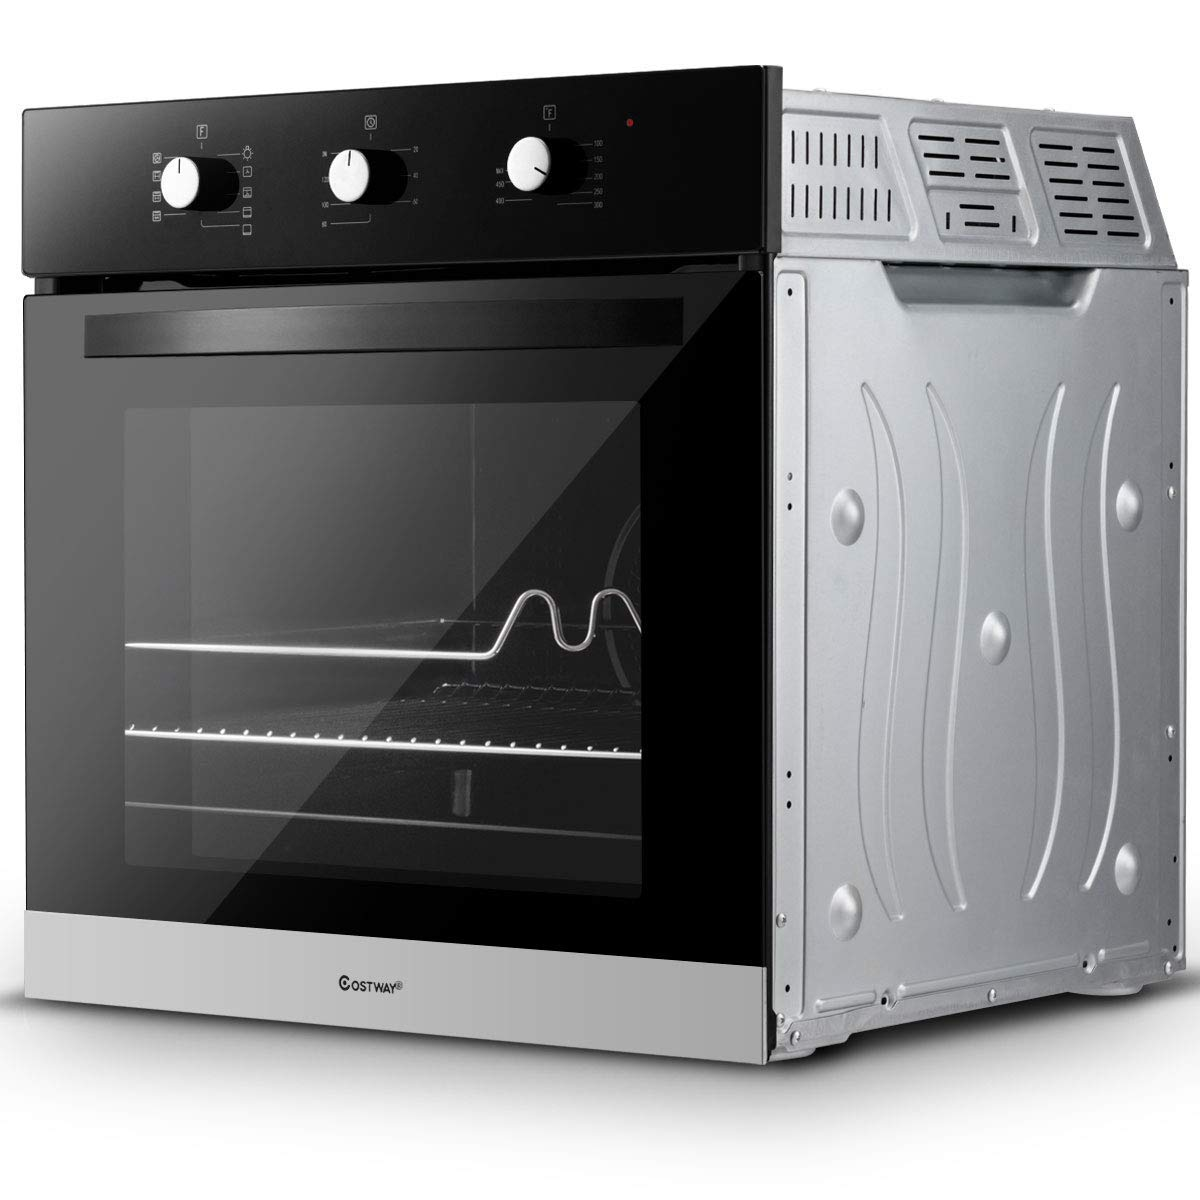 """Costway 24"""" Built-In Single Wall Oven Electric 2.5 Cu. Ft. Capacity Tempered Glass Multi-Function European Convection Oven with Push Buttons Control (9-Functions)"""